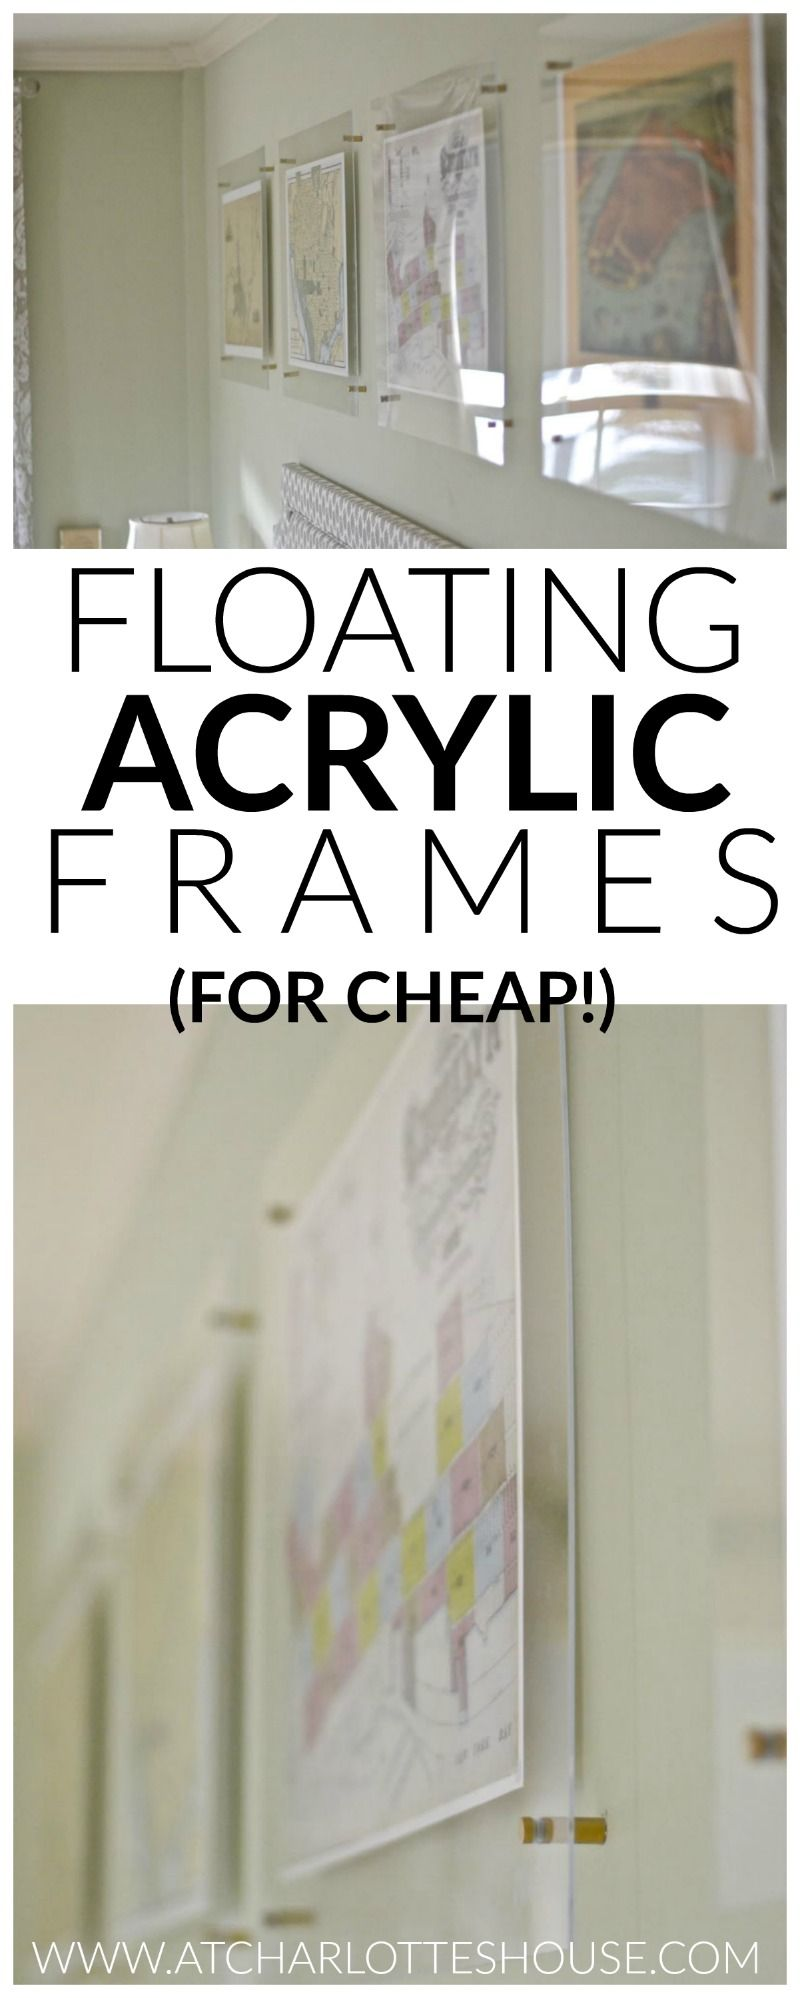 Budget Floating Acrylic Frame | Acrylic frames, Budgeting and Acrylics